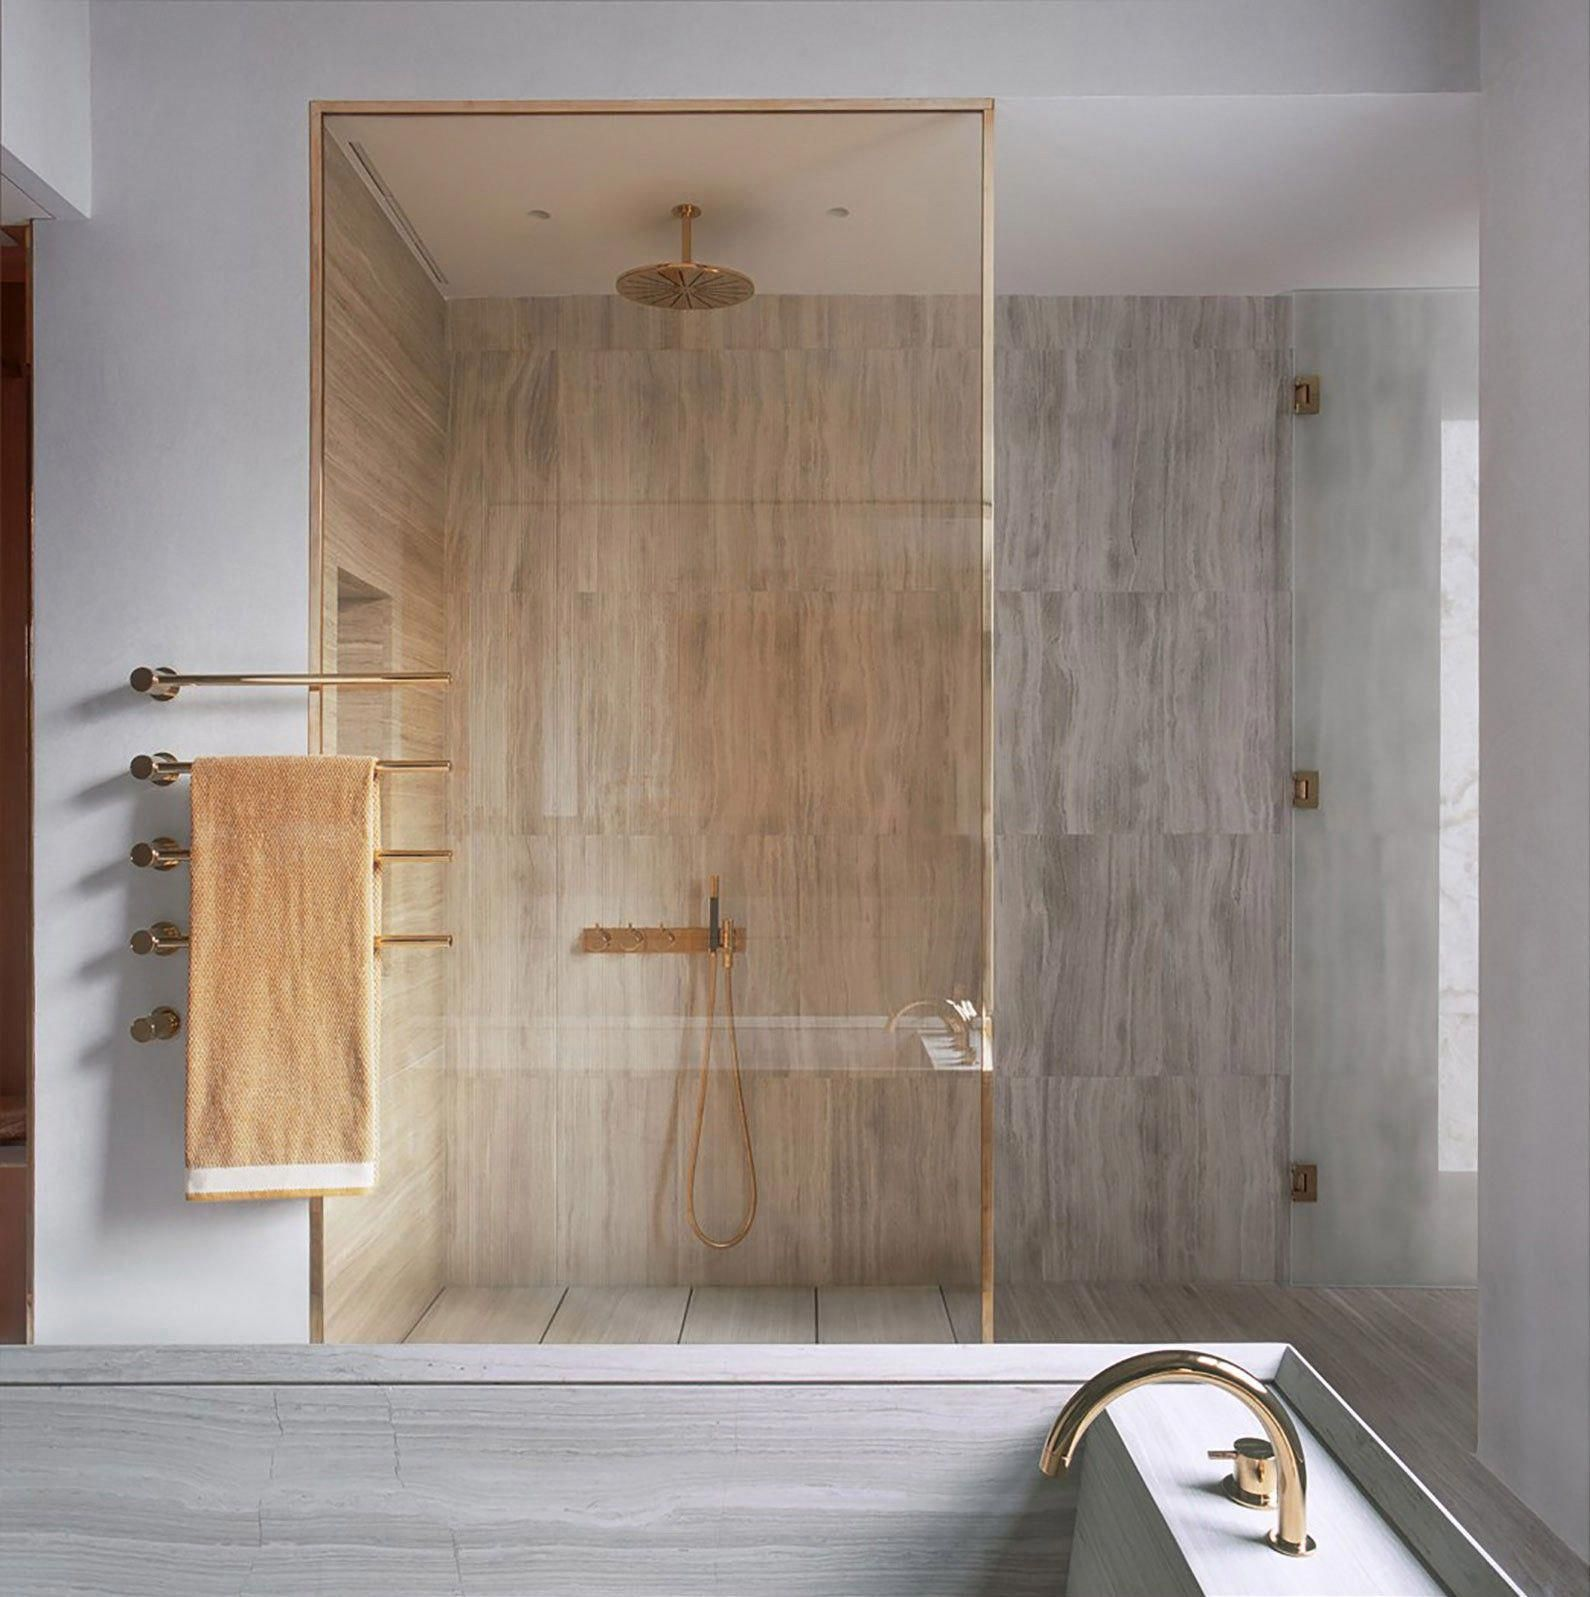 vola design vola design Vola Design: Minimalism and Functionality Vola Design Minimalism and Function 2